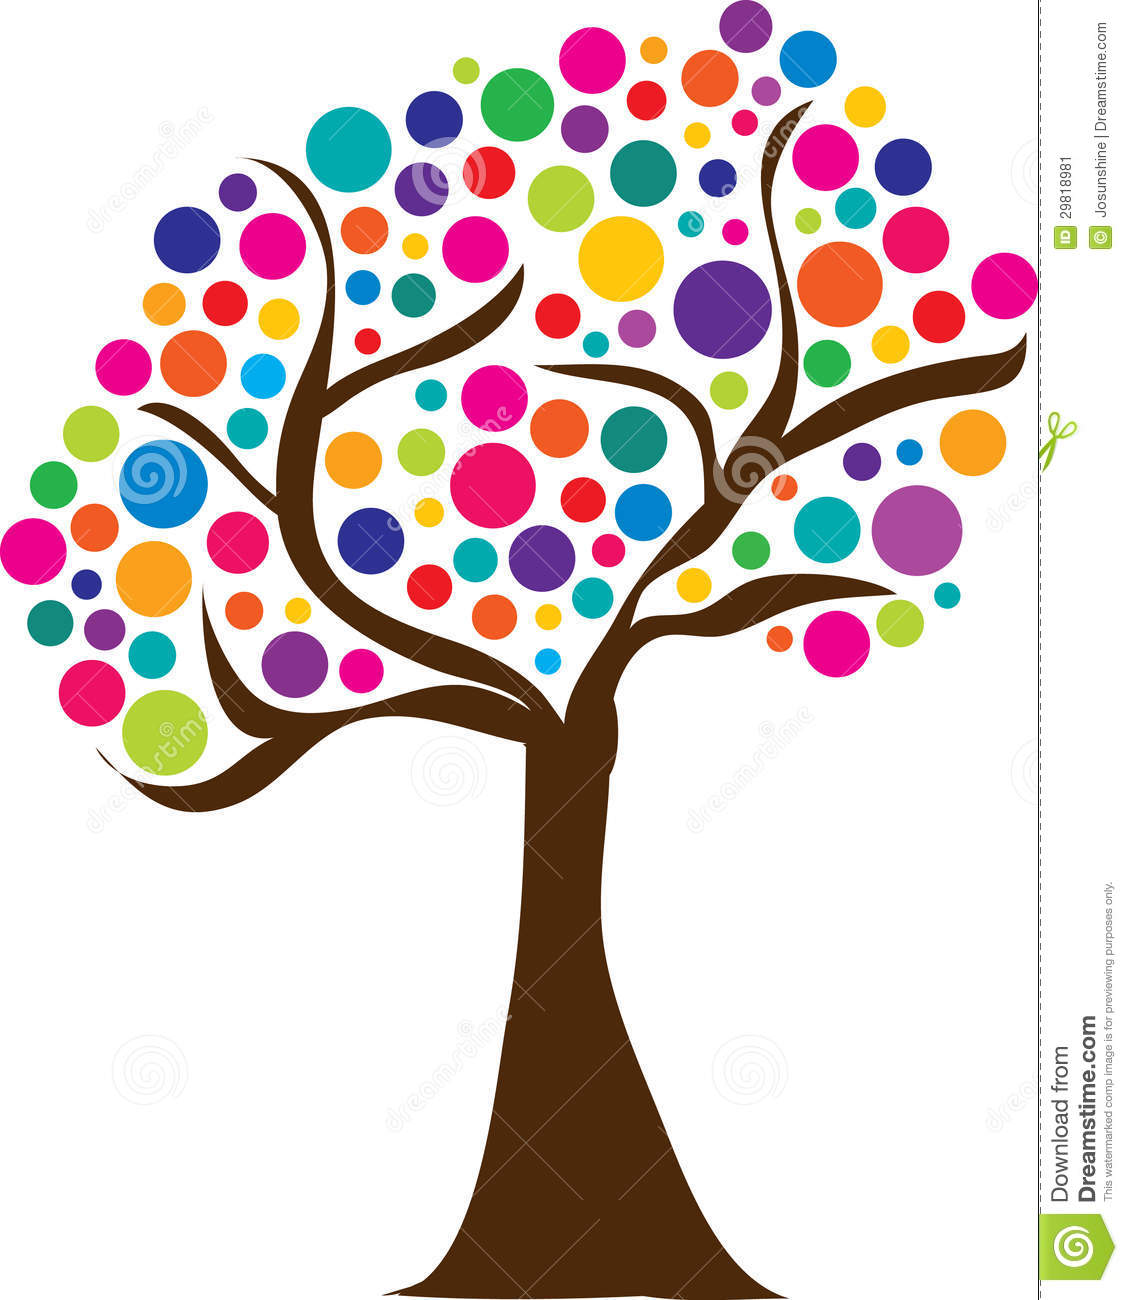 Cute Spring Tree With Colorful Balls Logo Or Clipart Or Easter Egg